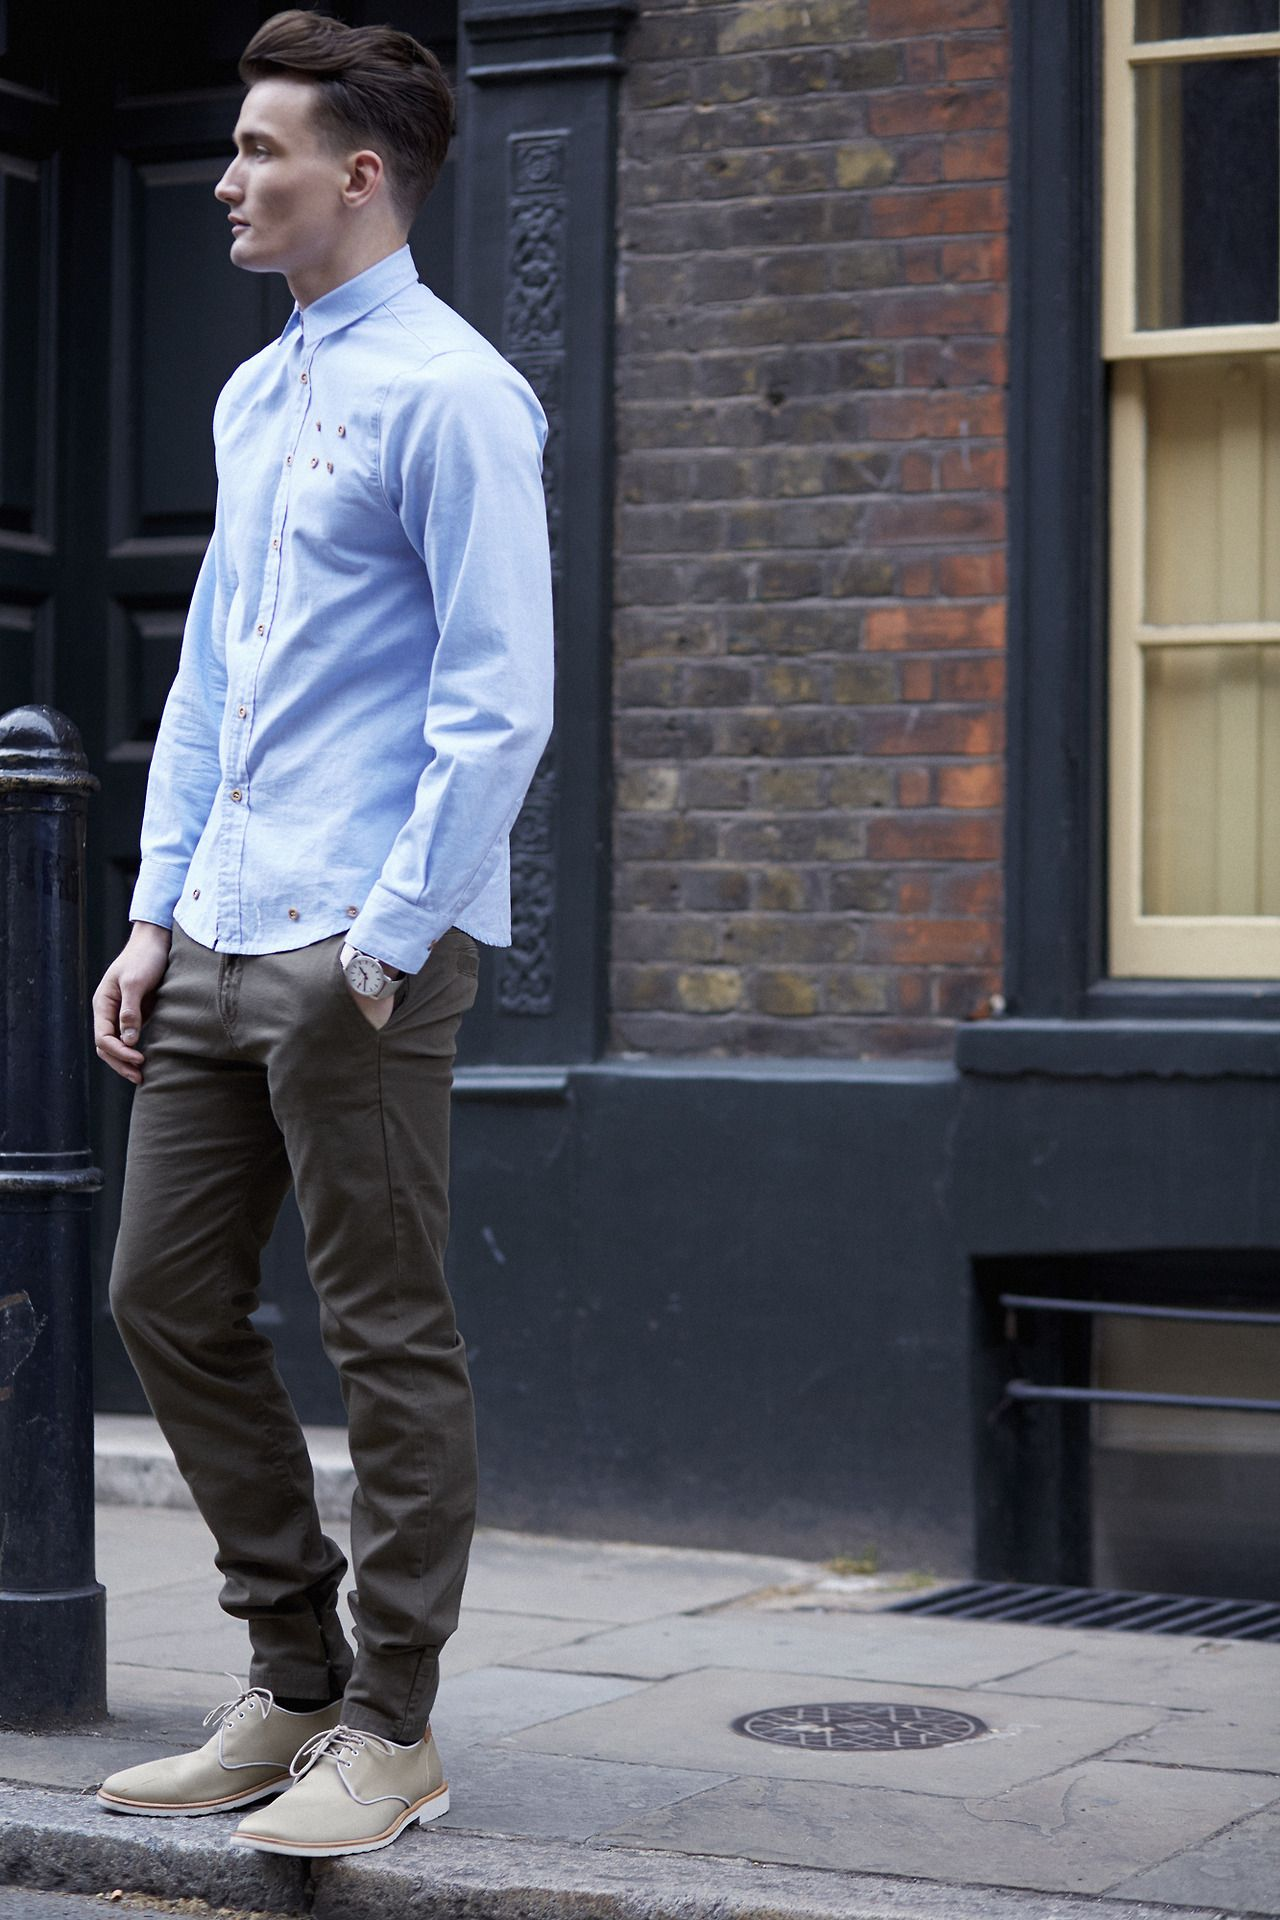 Men's Street Fashion - button up dressy casual downtown lifestyle